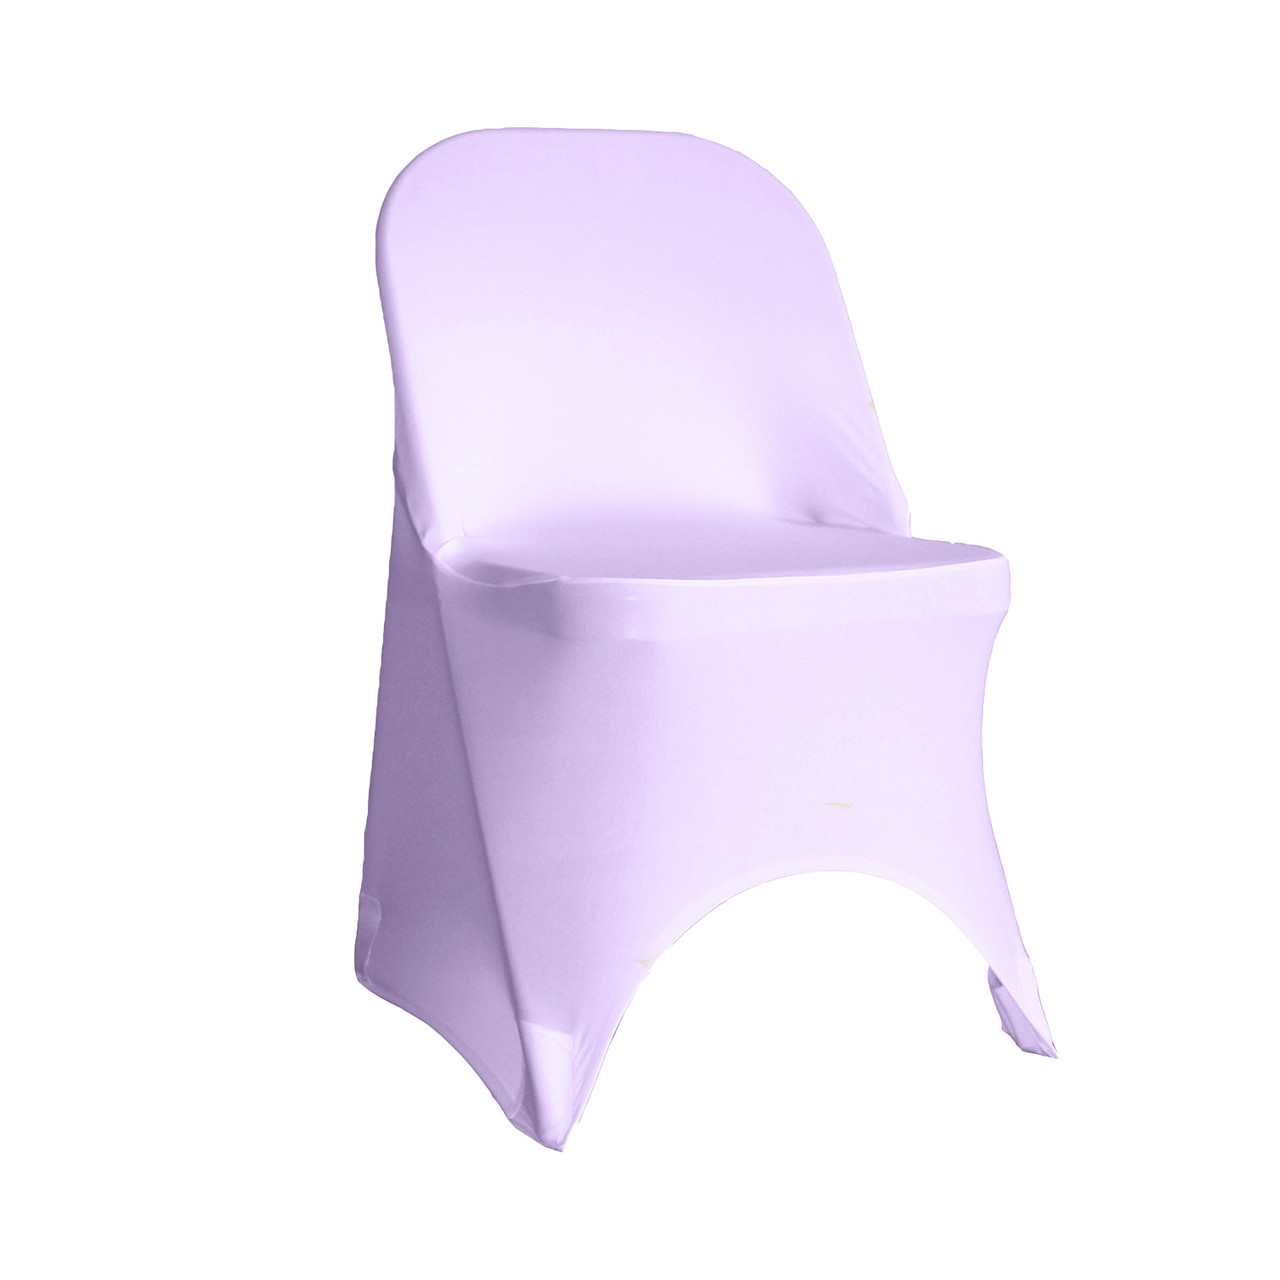 Super Stretch Spandex Folding Chair Cover Lavender Gmtry Best Dining Table And Chair Ideas Images Gmtryco